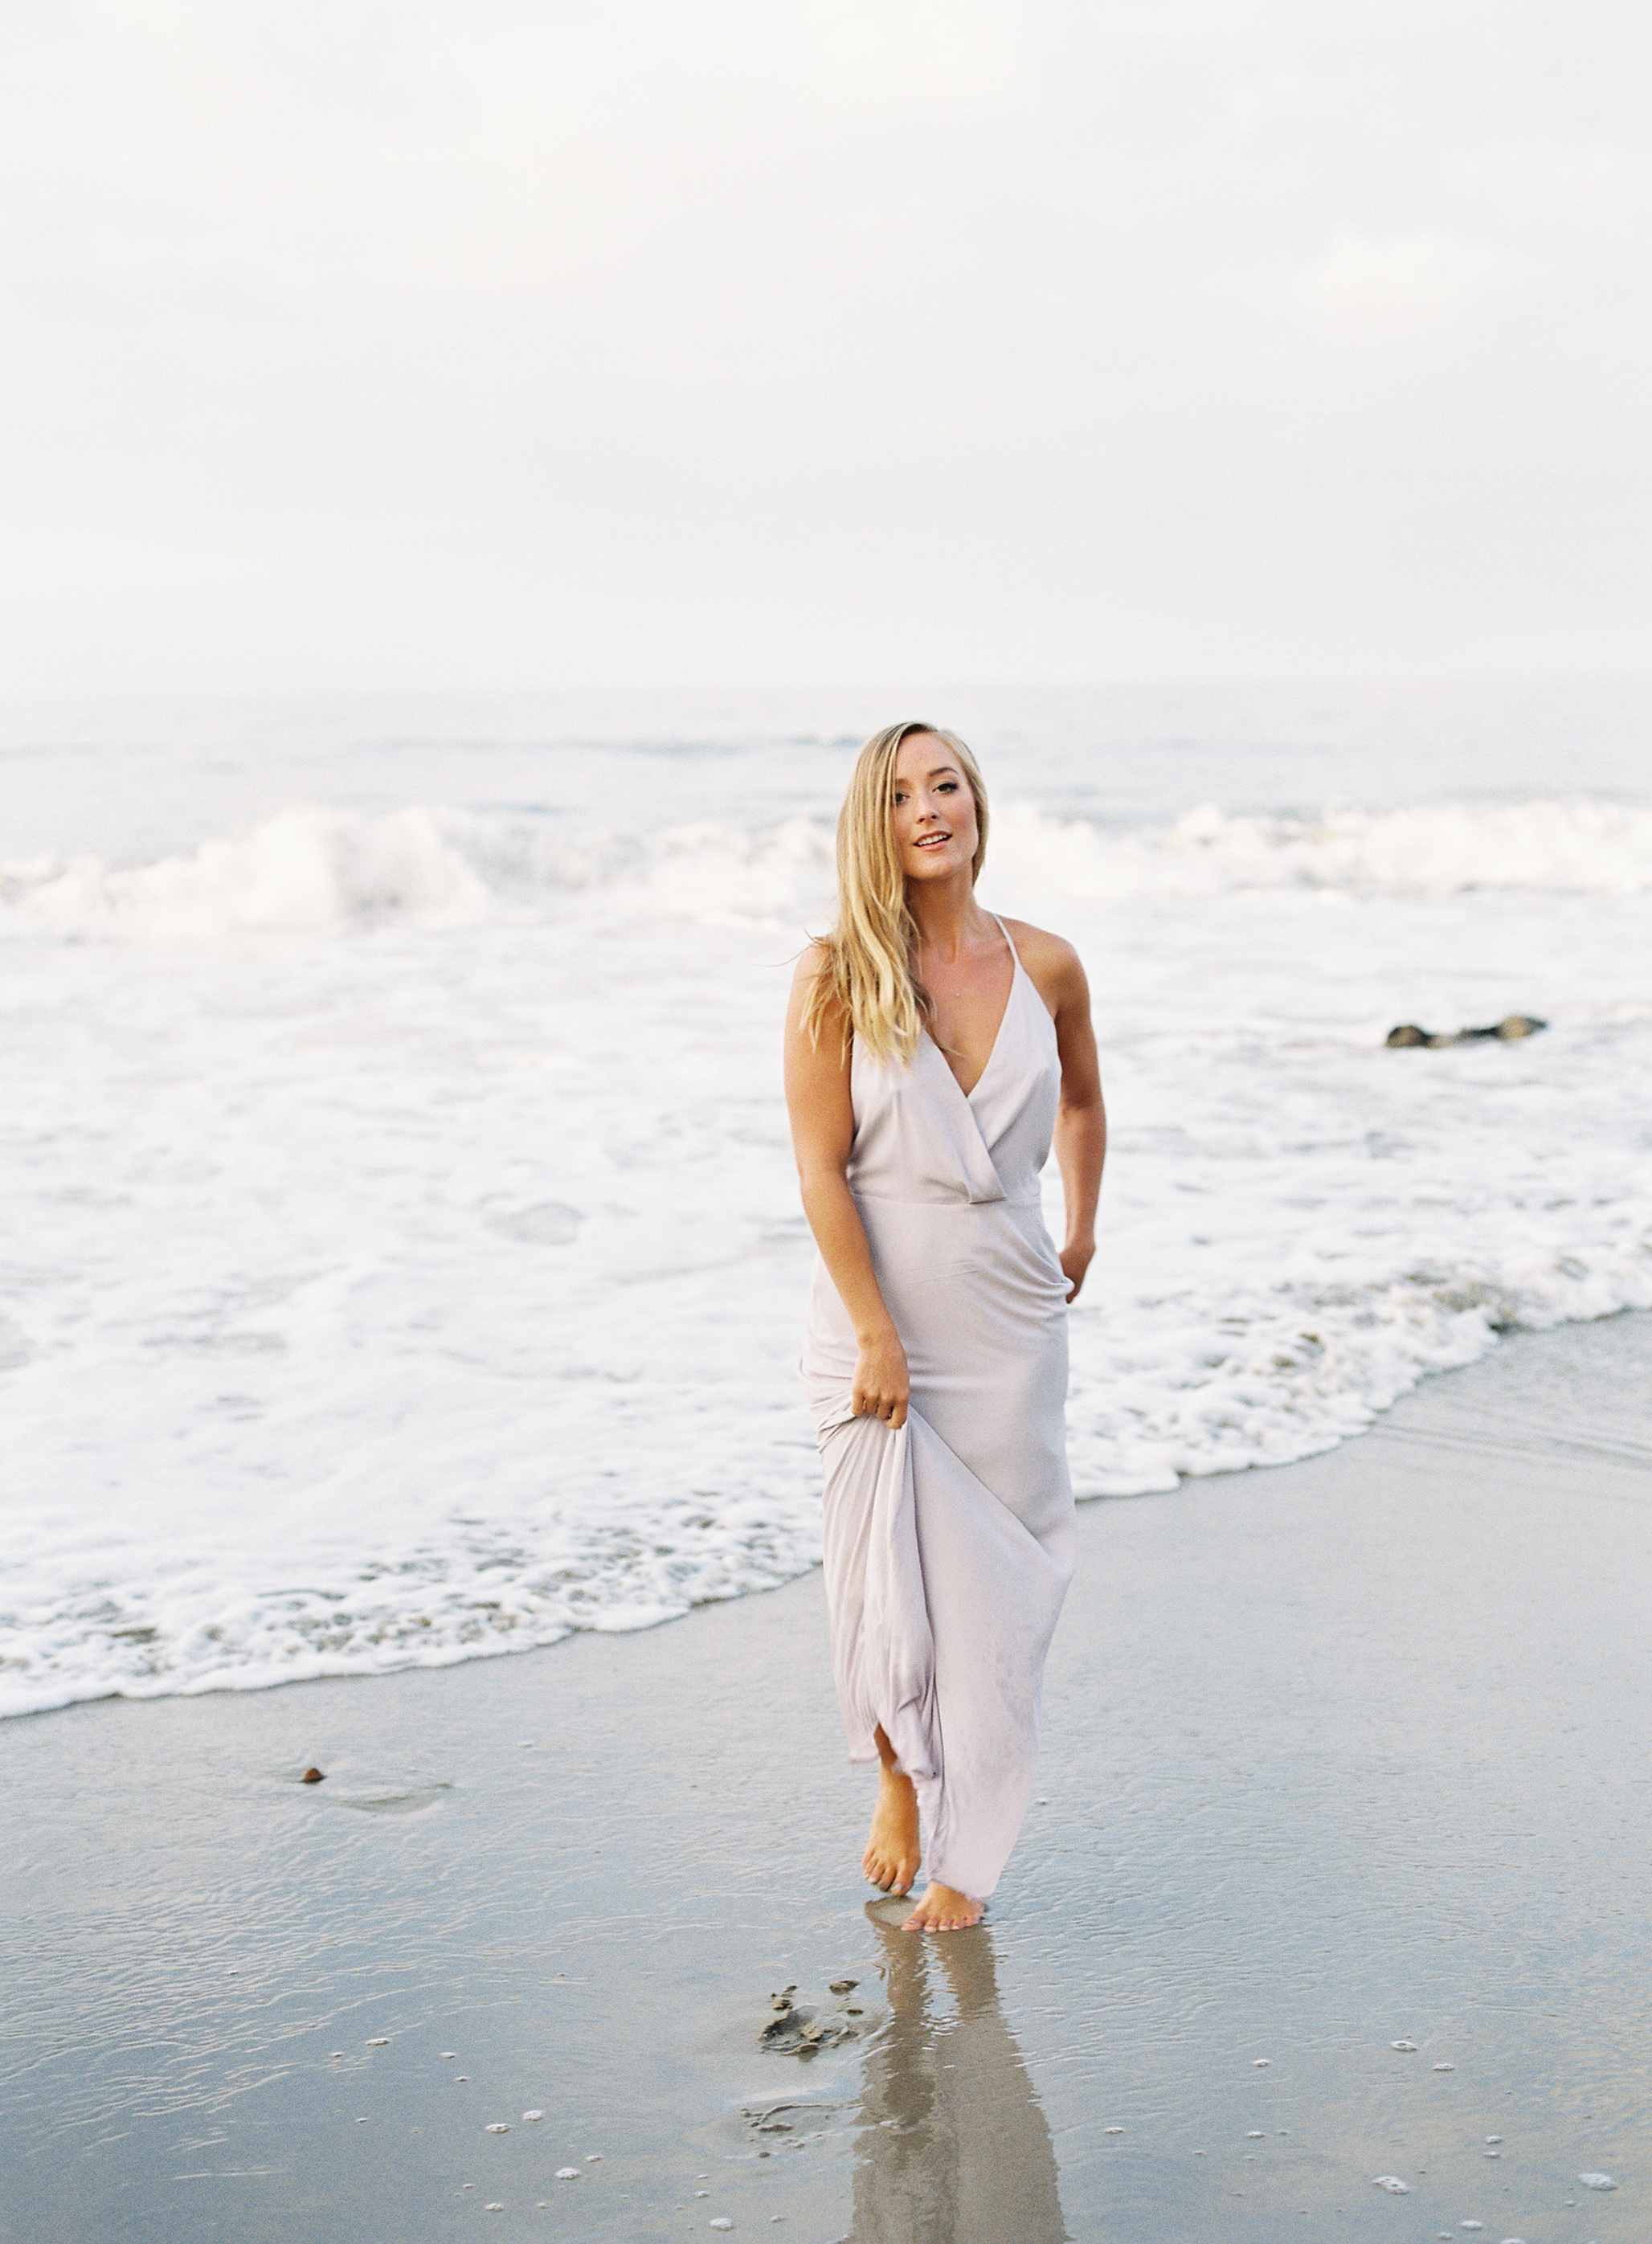 Charlotta - El Matador Beach Malibu - Peaches & Twine Fine Art Film Photography -64.jpg